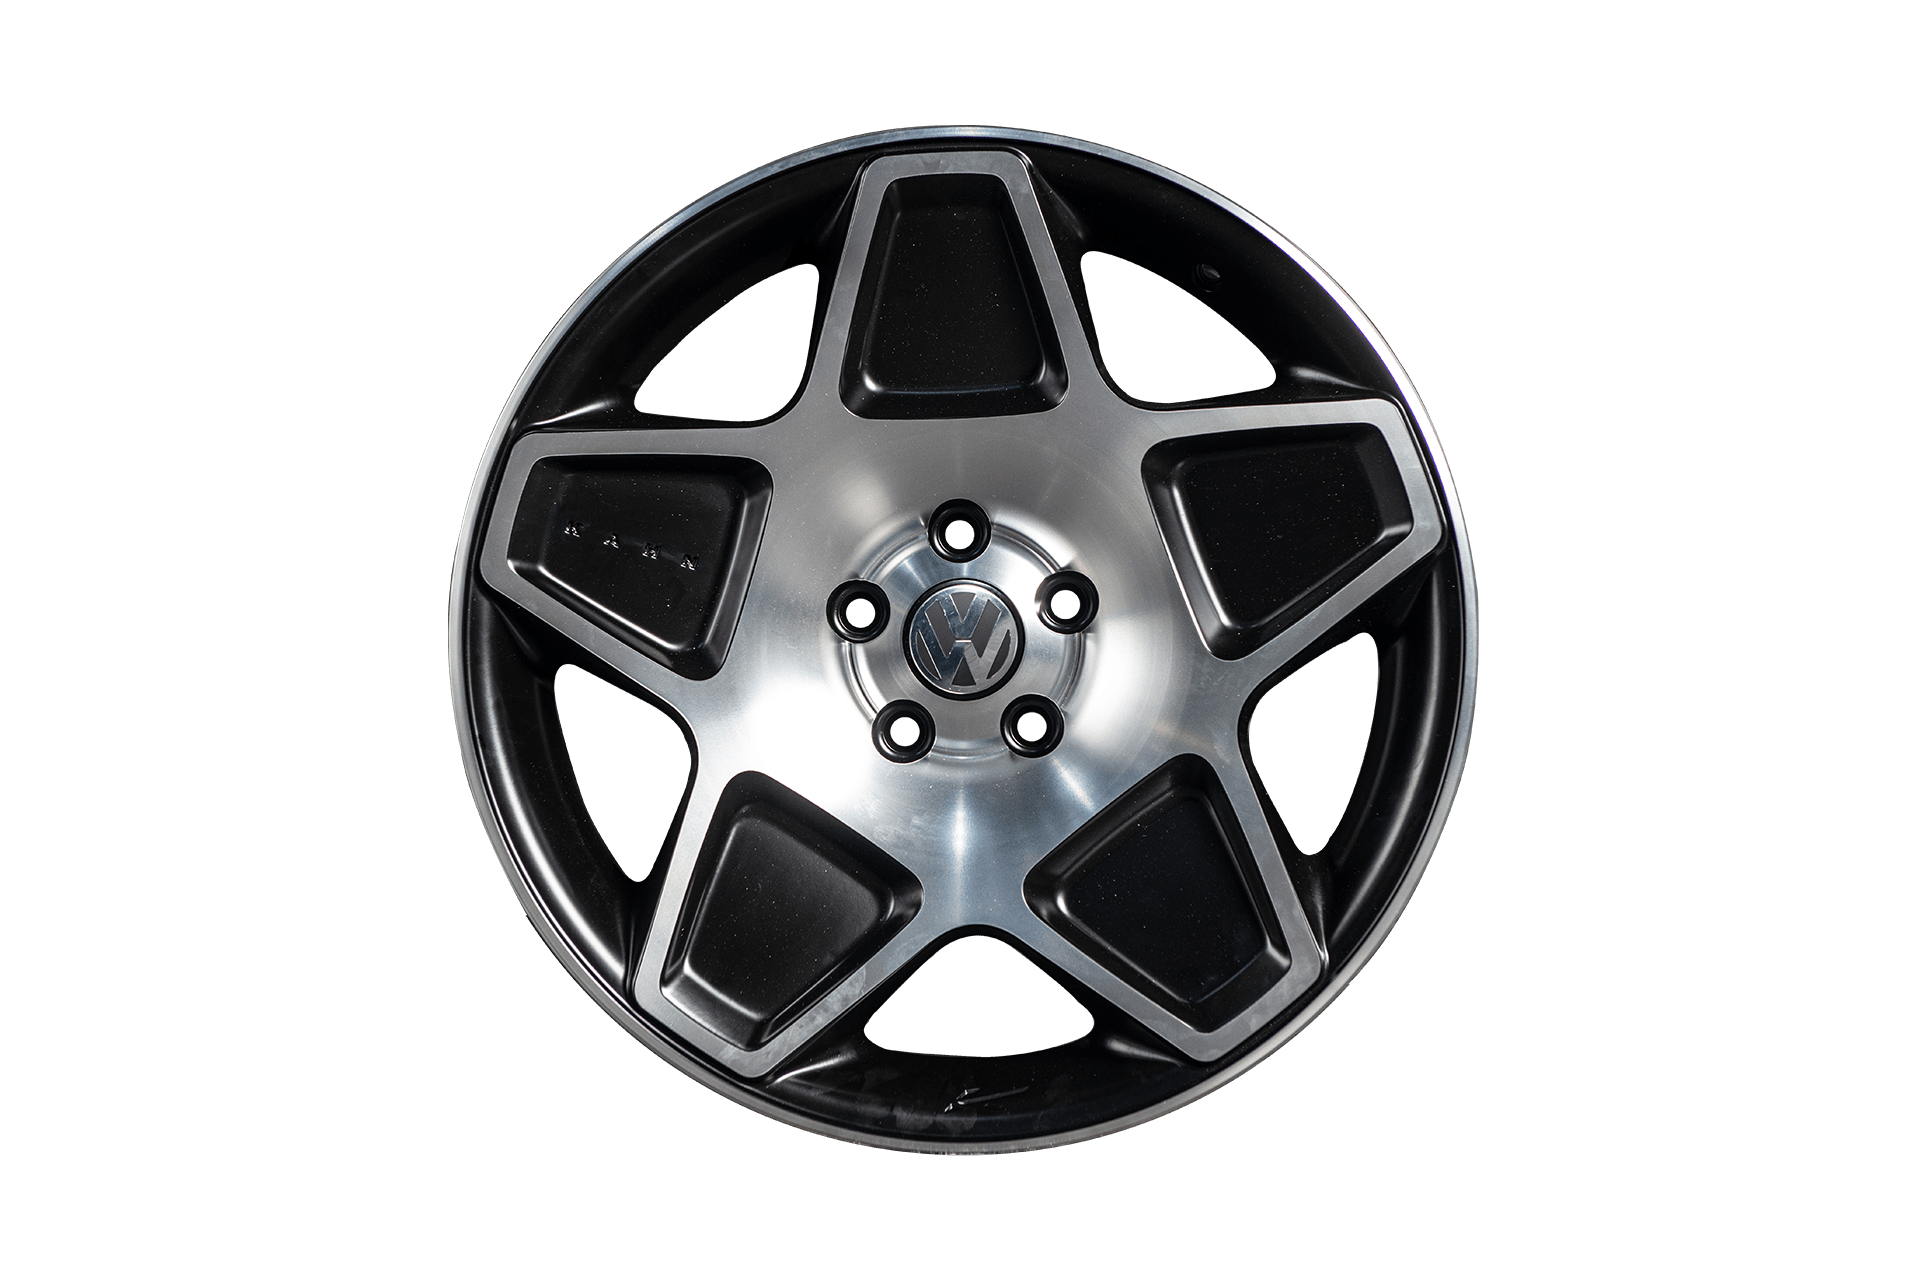 Volkswagen T6 (2015-Present) Mondial Light Alloy Wheels